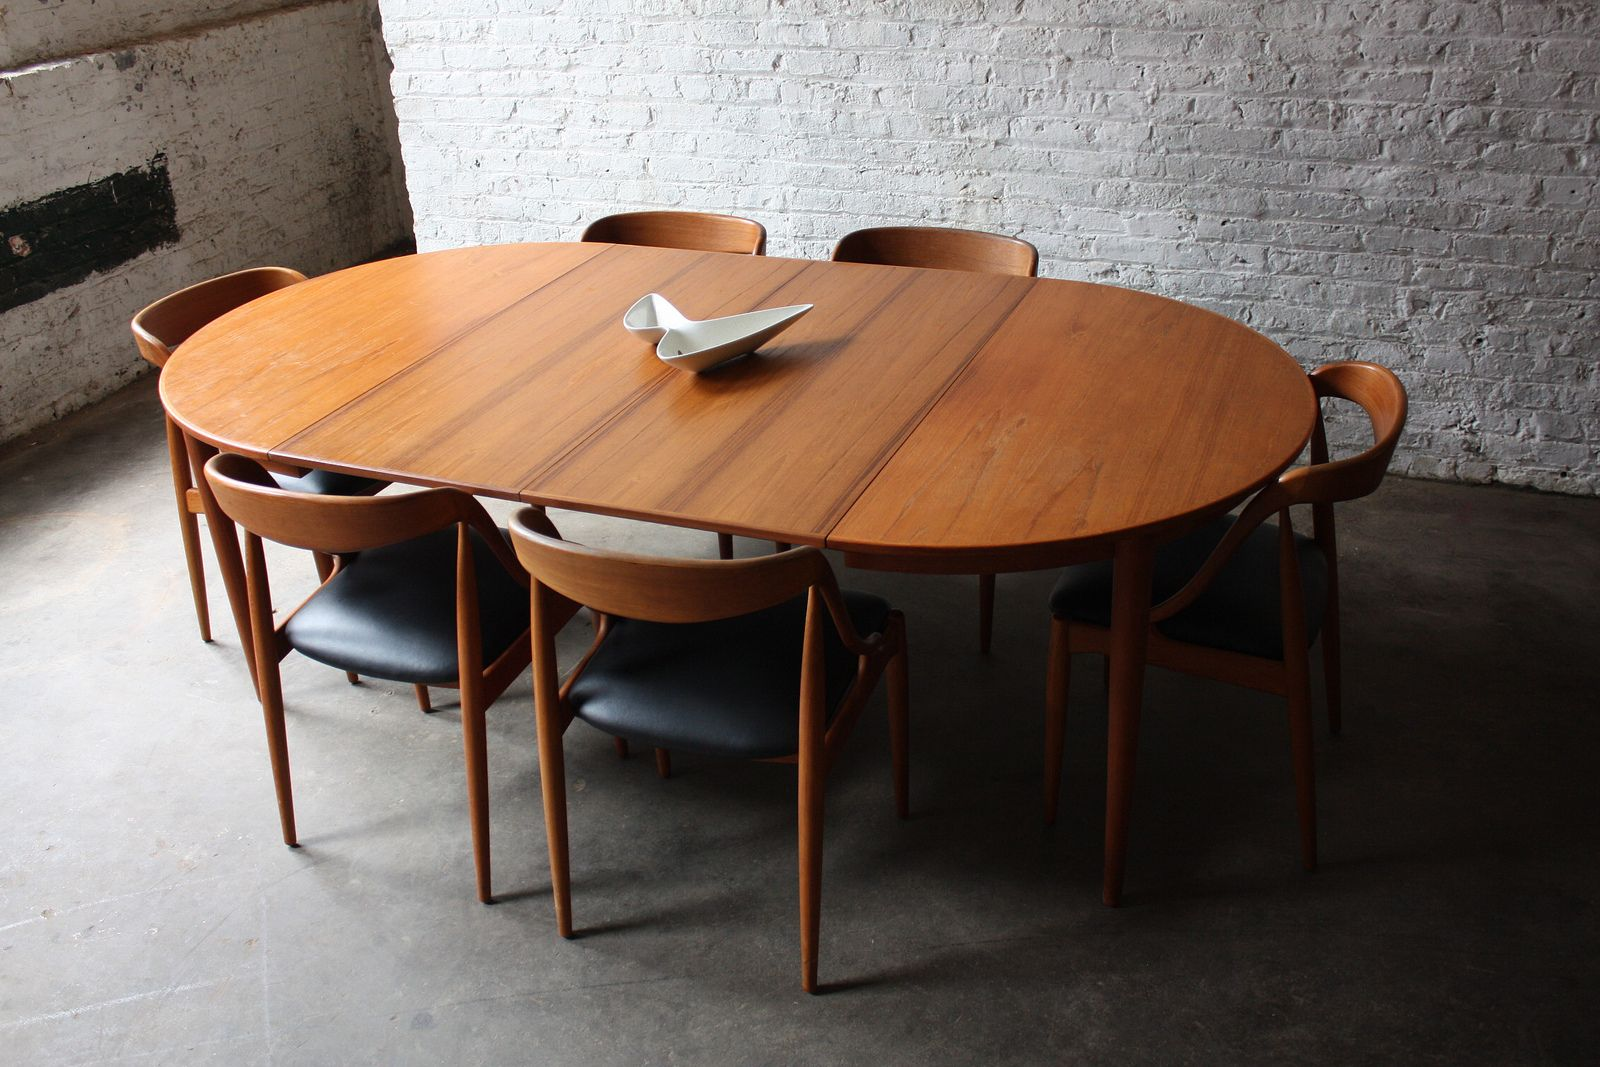 Breathtaking Johannes Andersen Danish Modern Teak Dining Table And Chairs Denmark 1960 S Oval Table Dining Teak Dining Table Scandinavian Dining Room